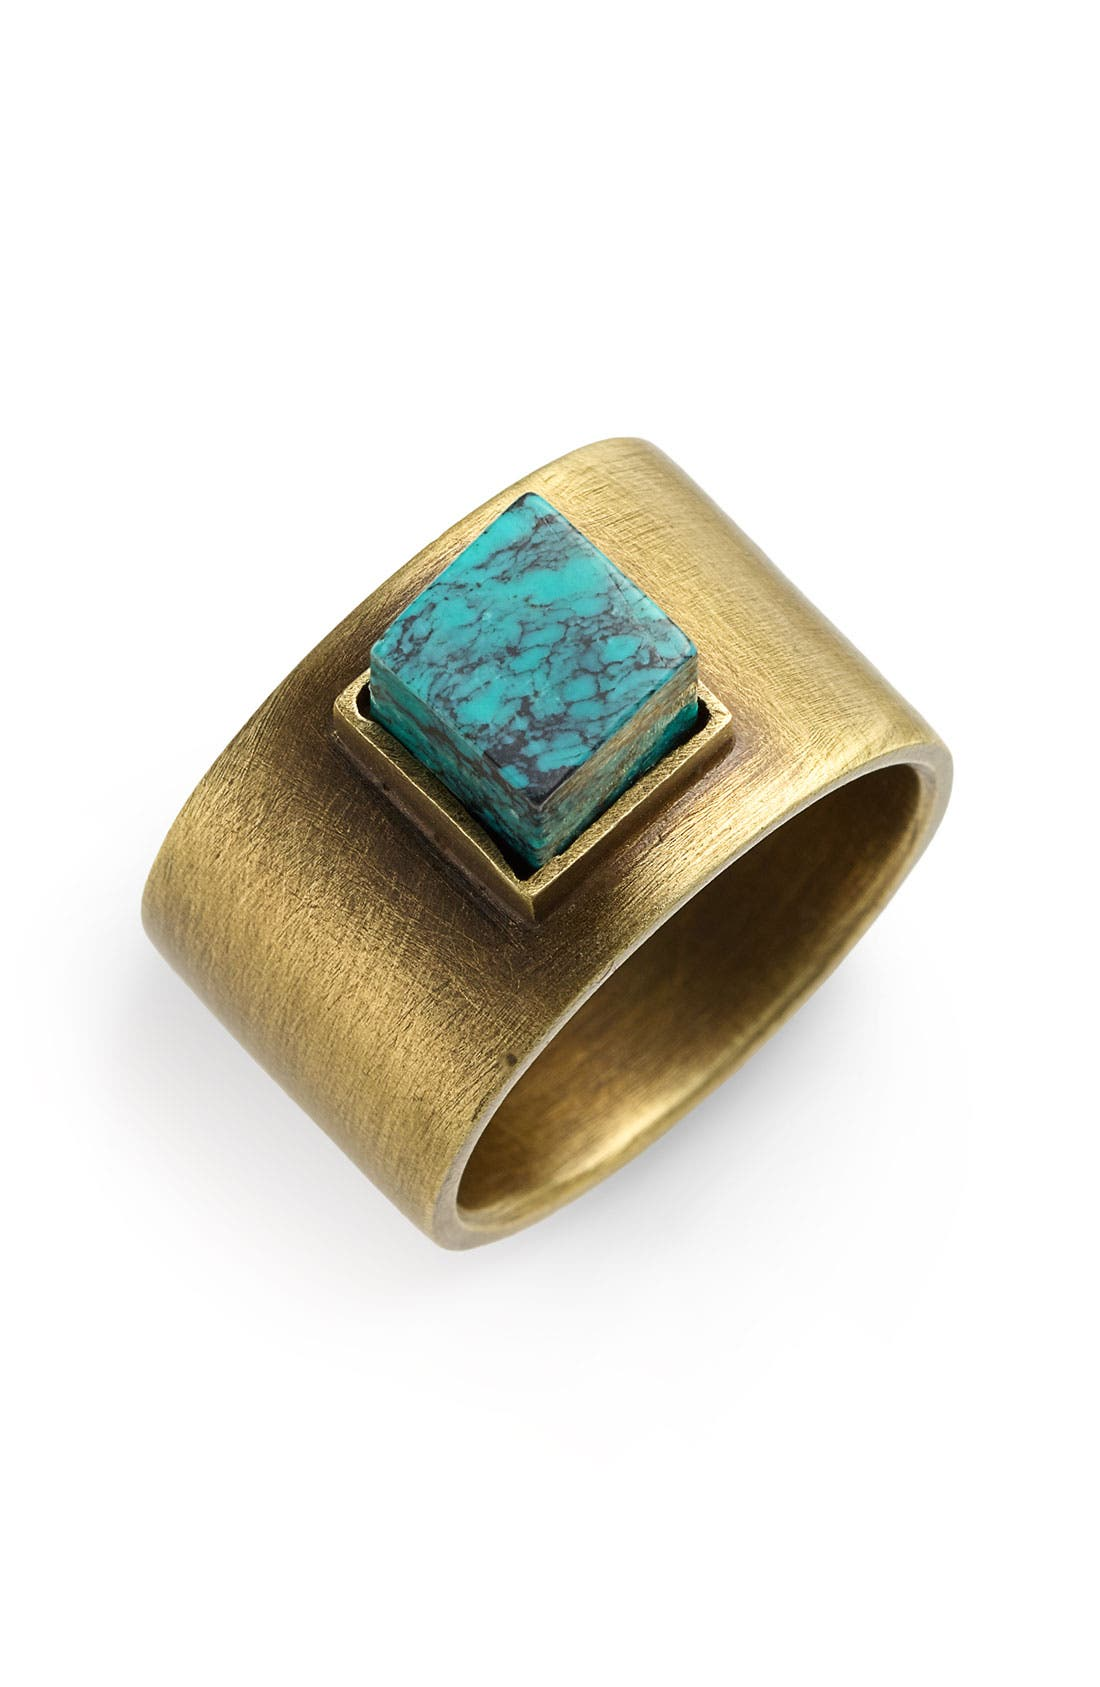 Alternate Image 1 Selected - Kelly Wearstler Turquoise Stud Ring